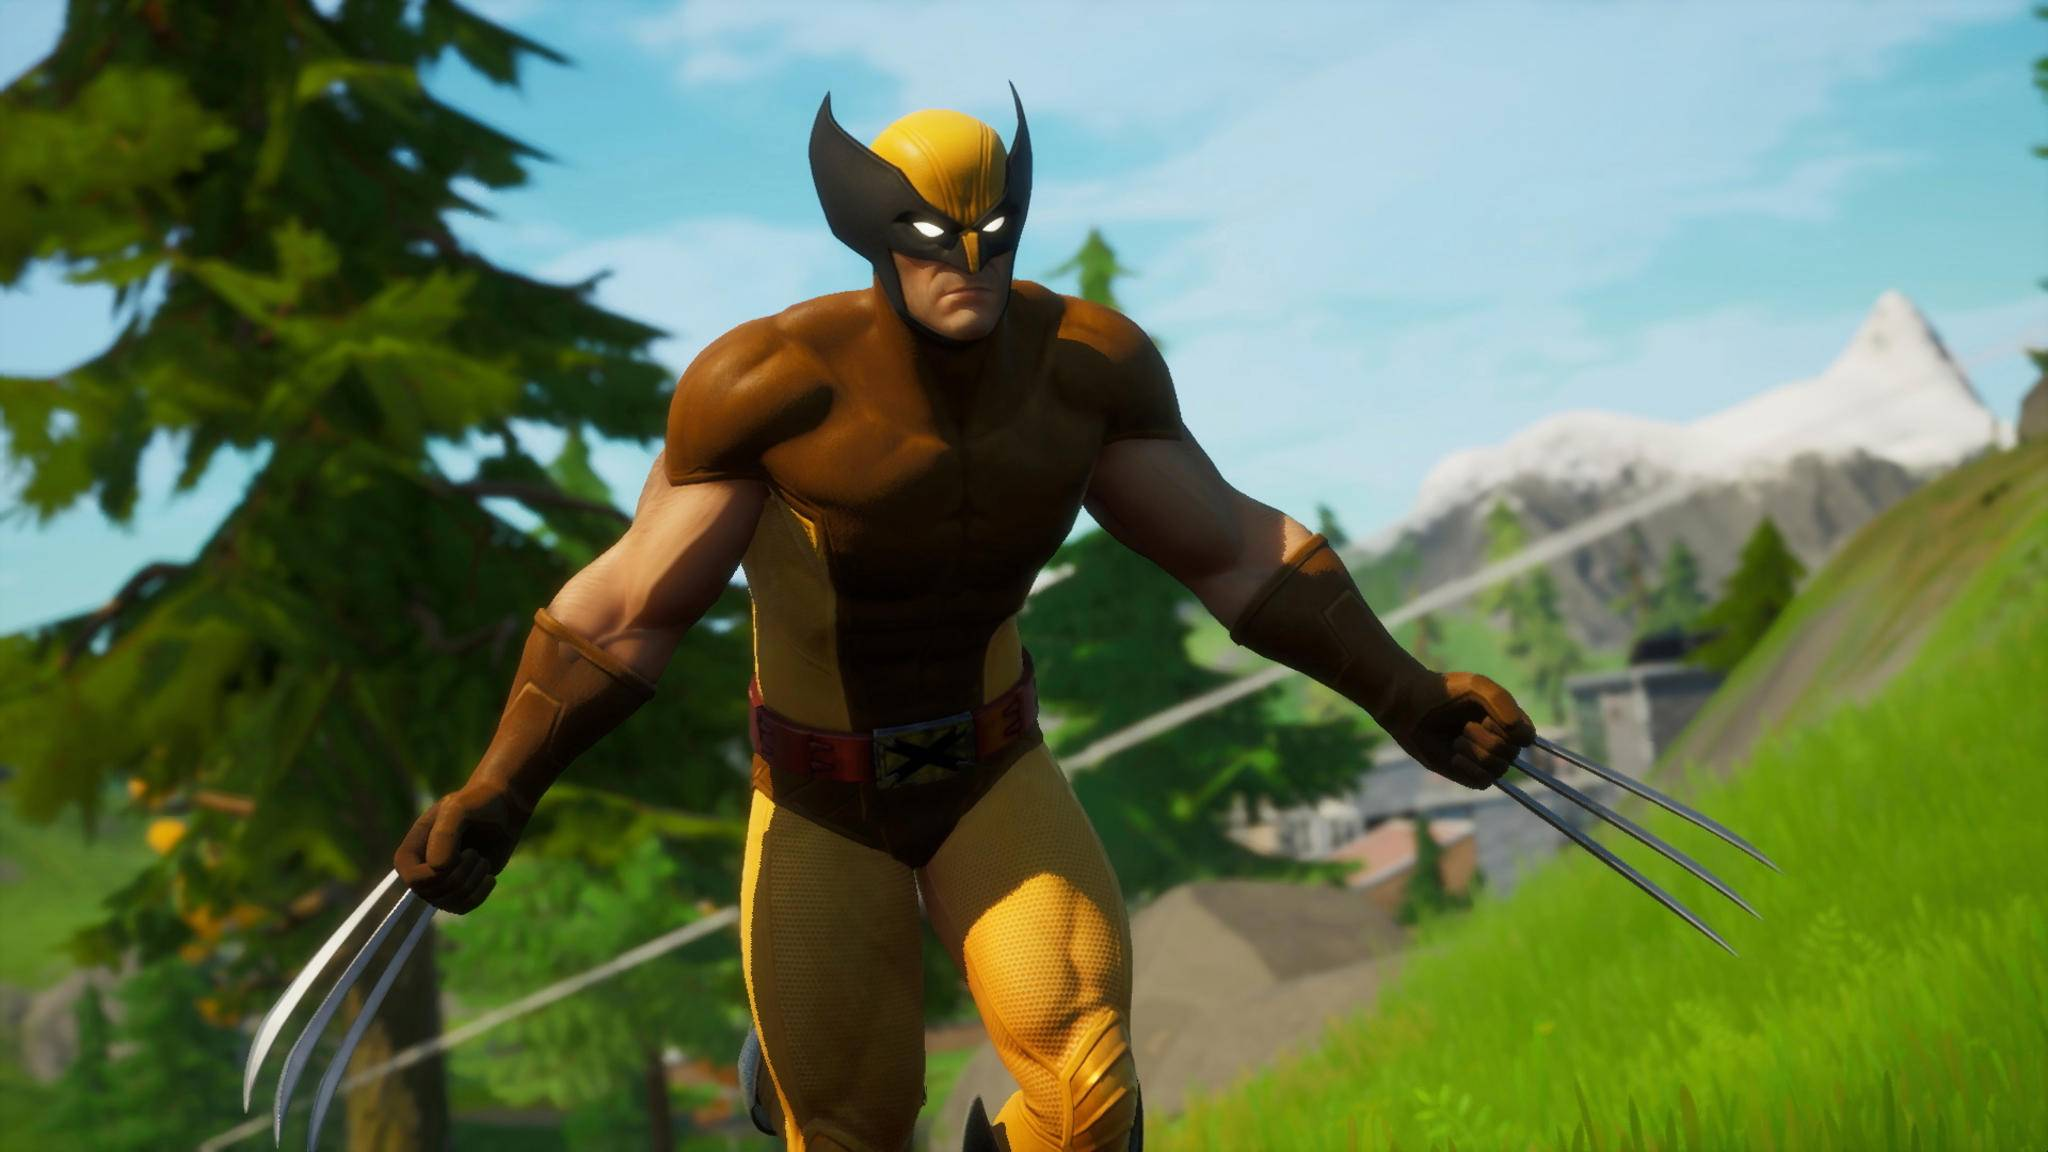 Wolverine will be roaming the Season 4 map as a Fortnite boss after the v14.20 update.